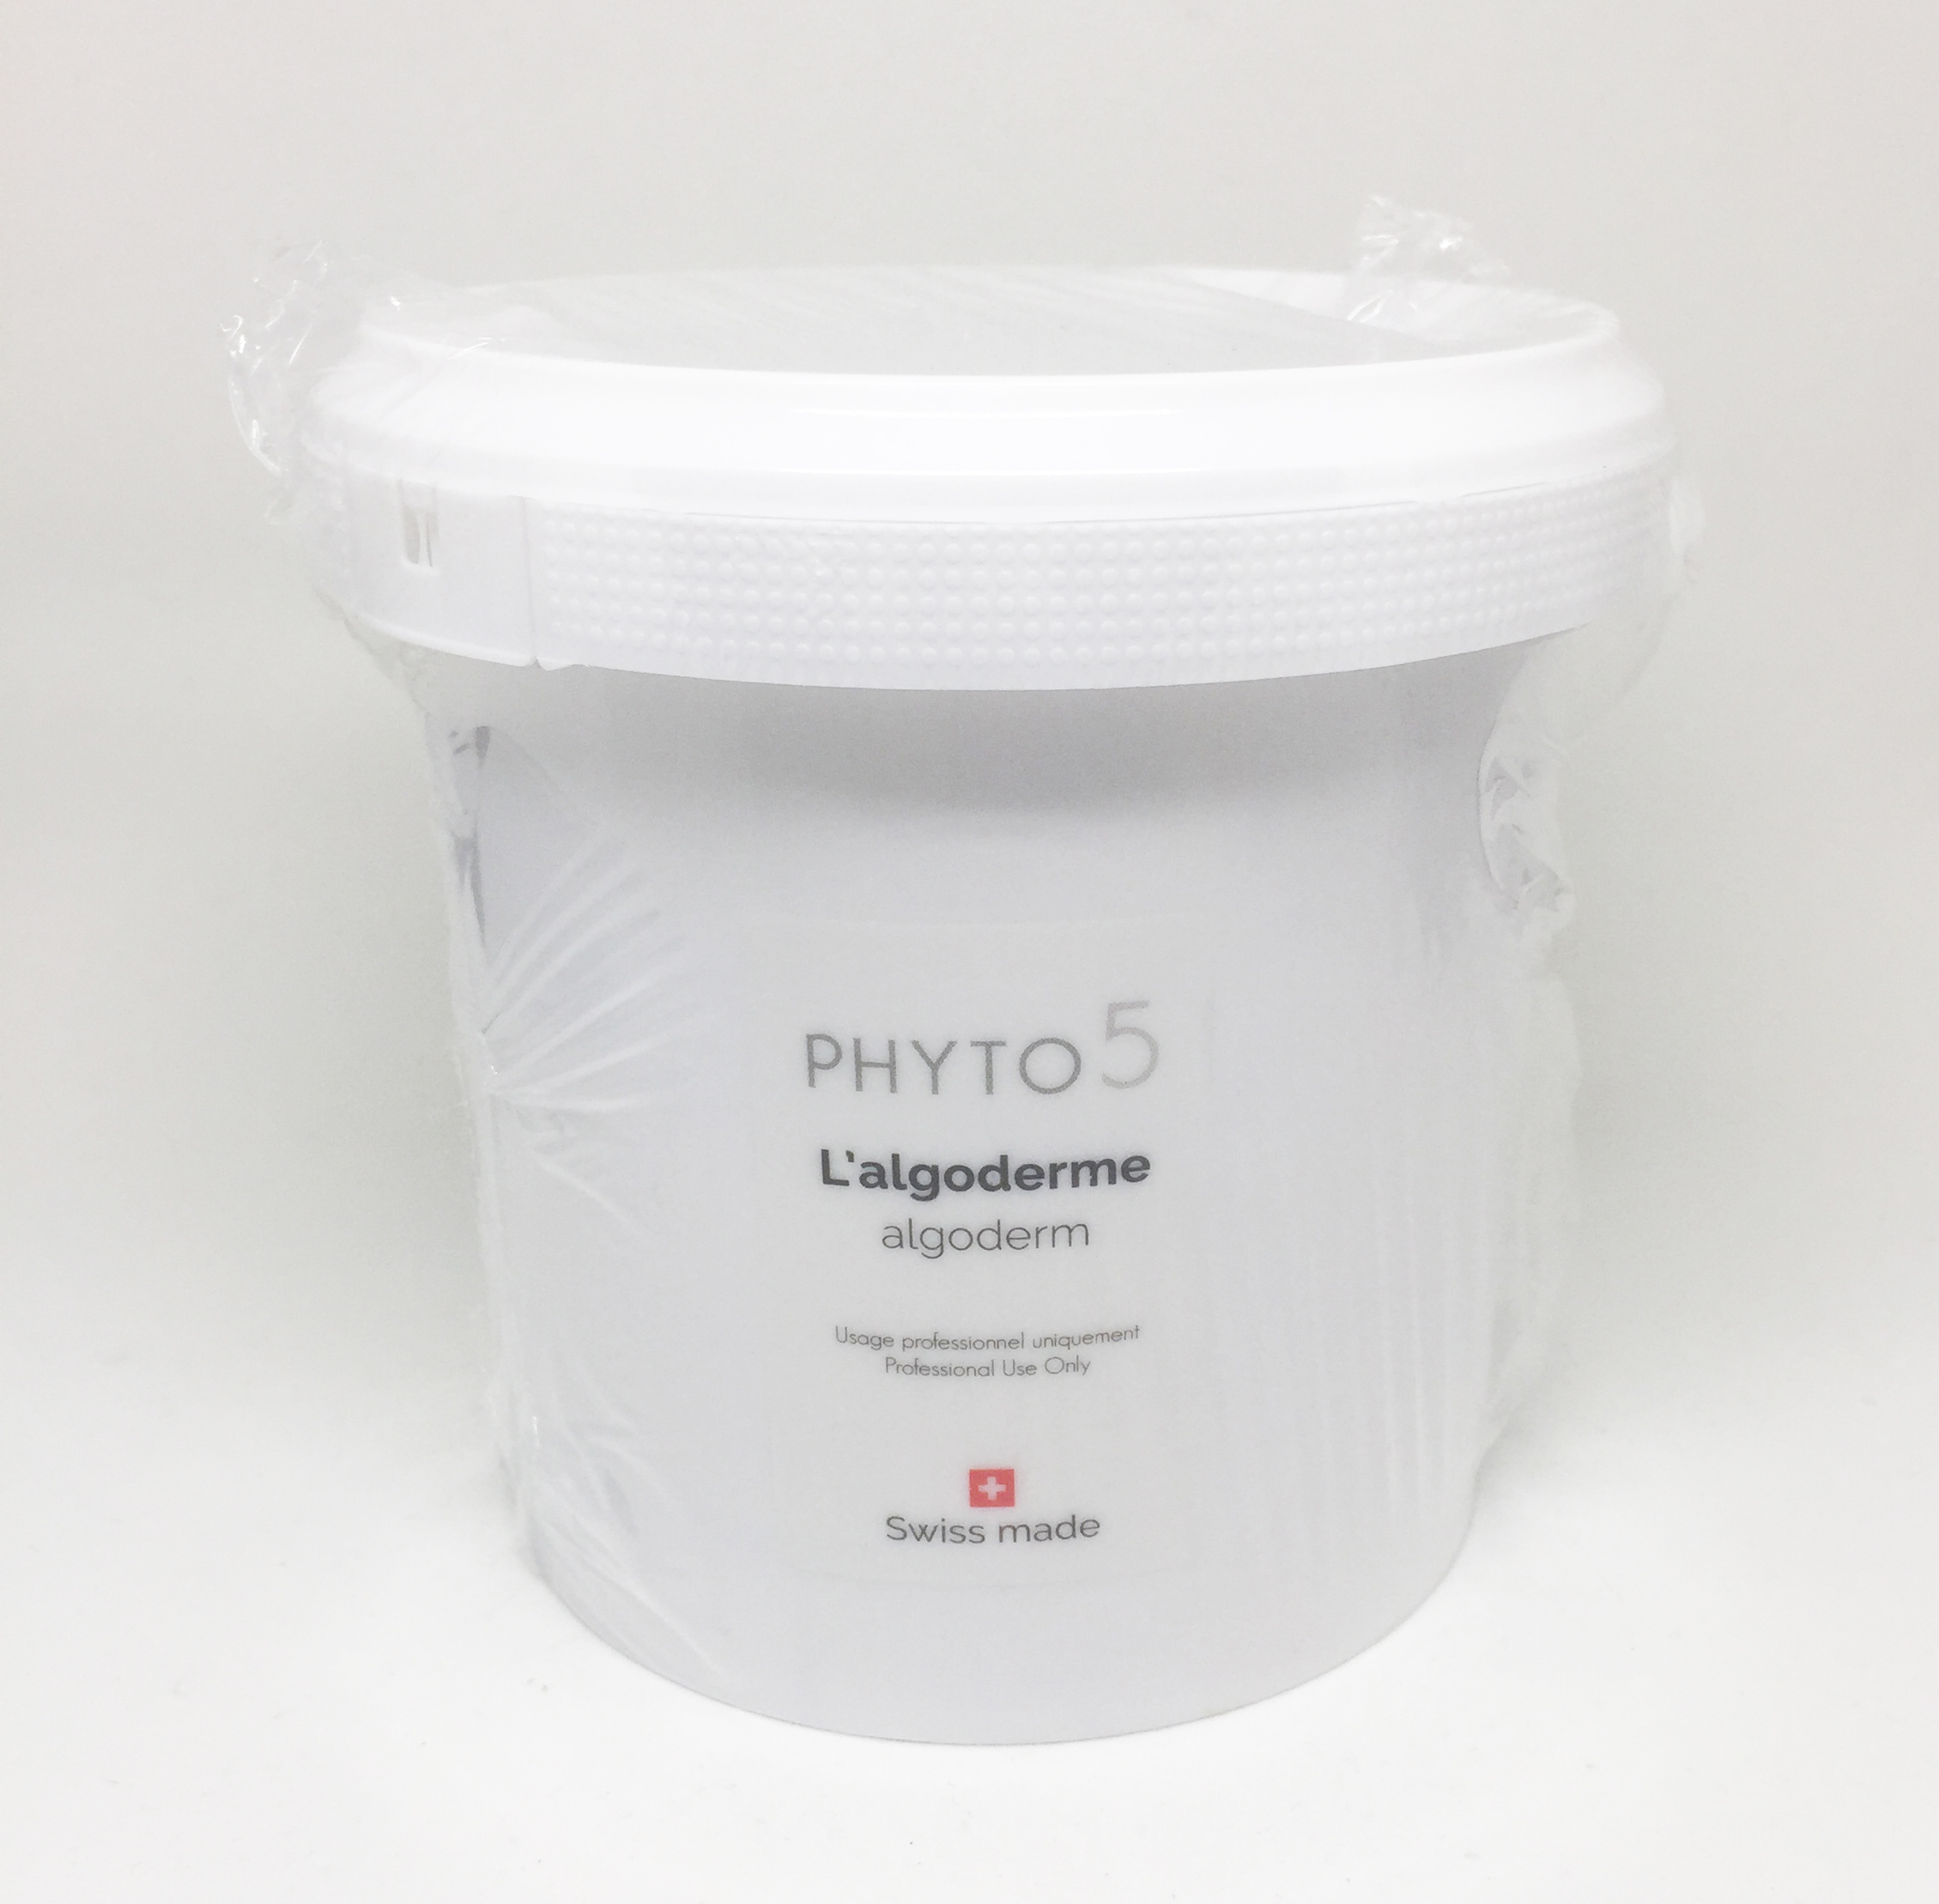 Algoderme base cream, professional tub size